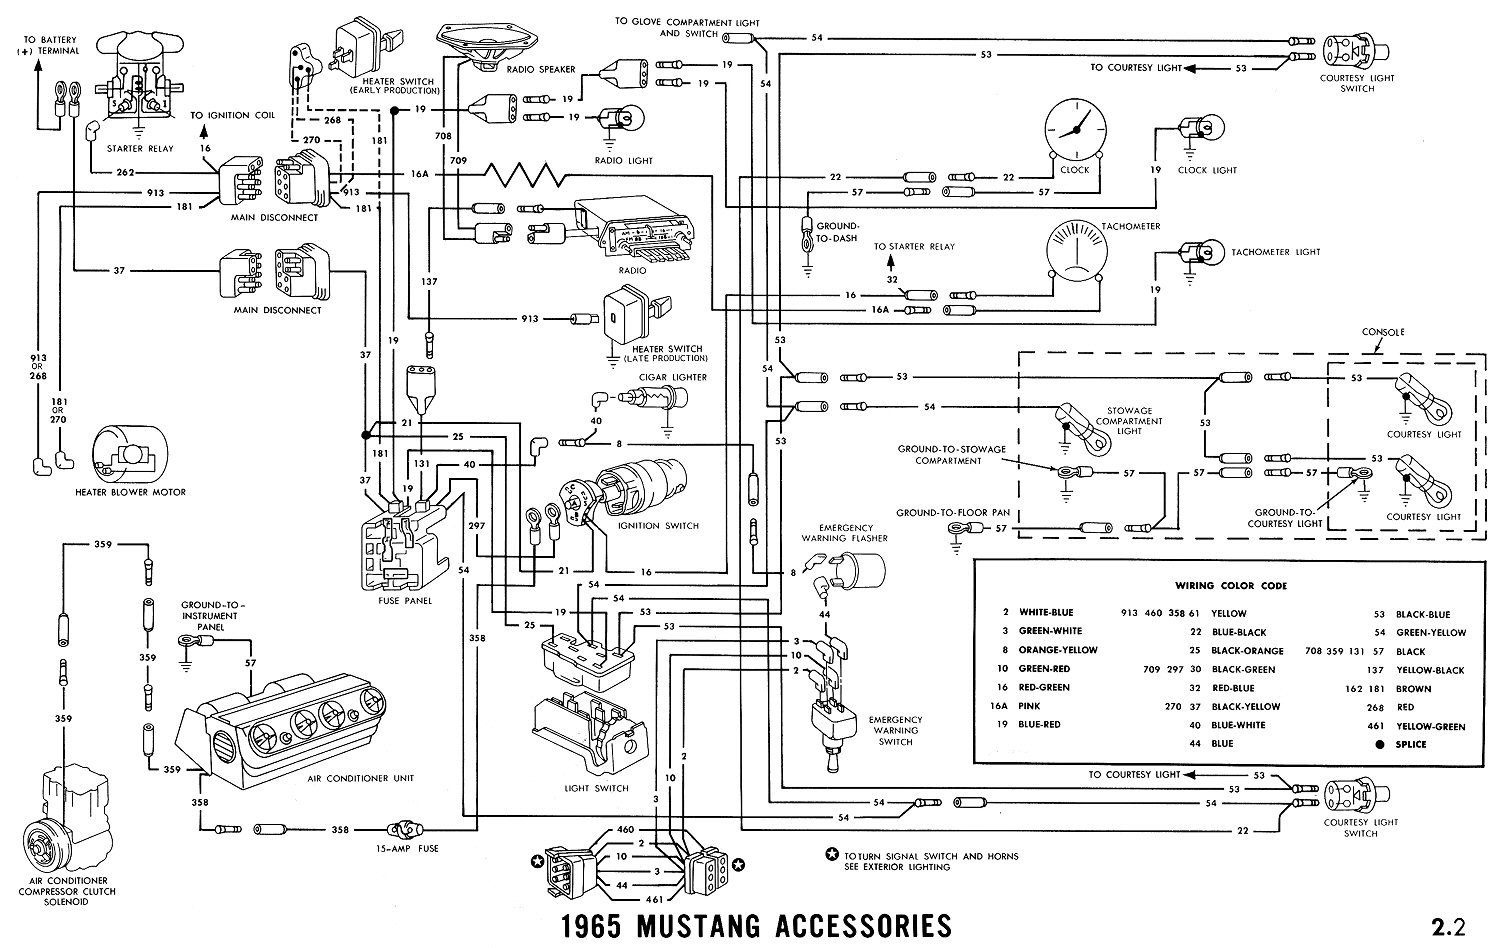 wiring diagram for 1996 ford mustang convertible fuse block on a 1965 mustang coupe - ford mustang forum ignition wiring diagram for 1996 ford f 150